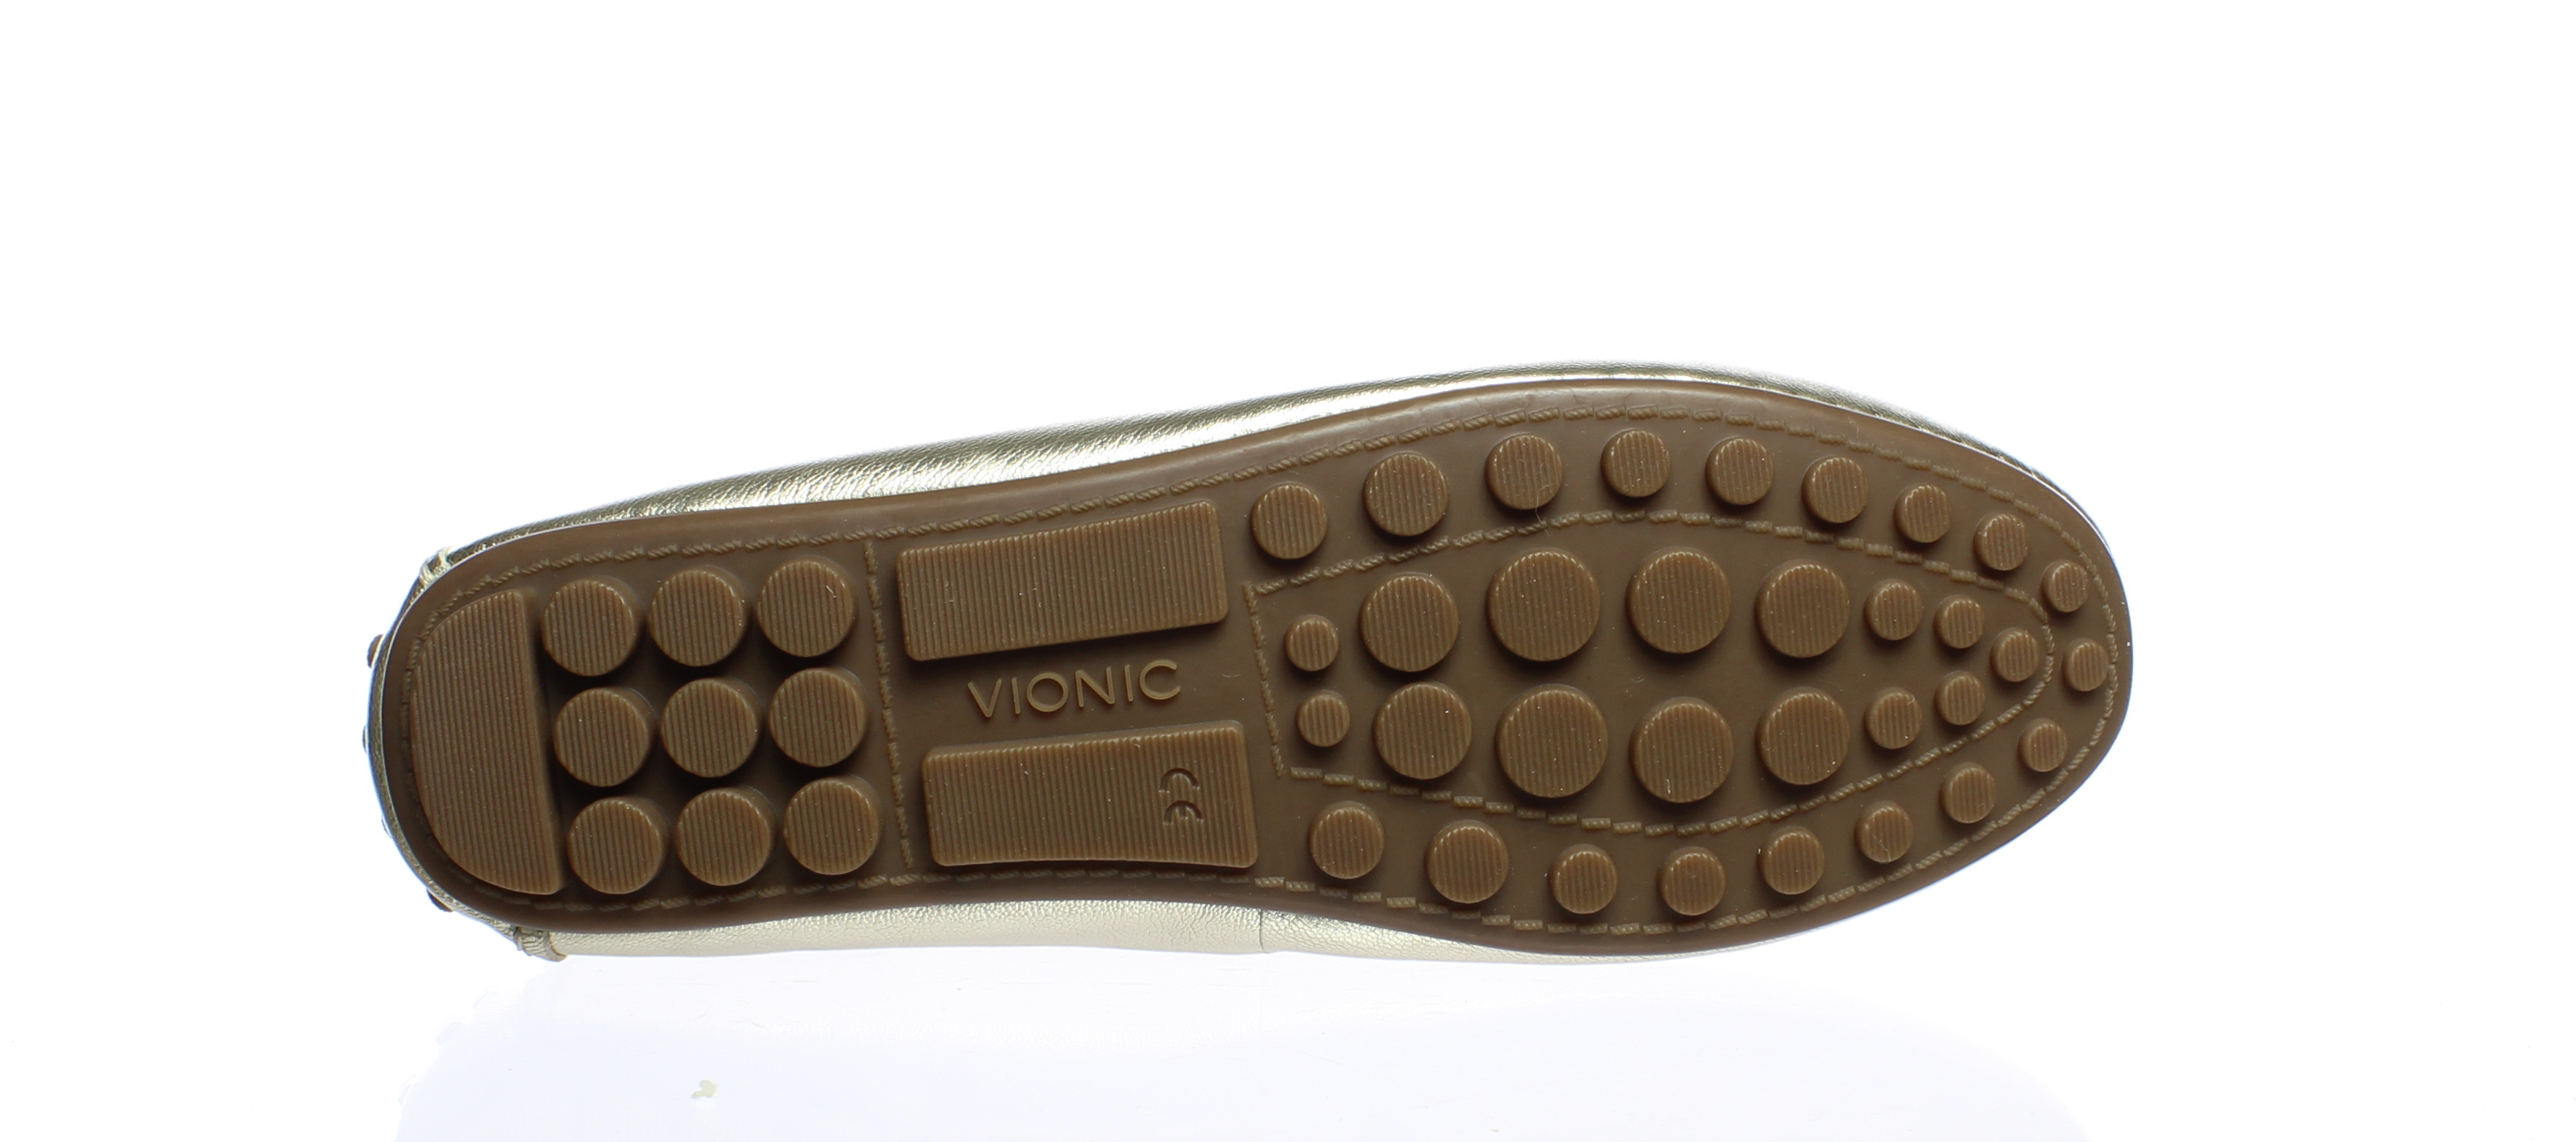 Vionic-Womens-Honor-Ashby-Leather-Driving-Moccasin-Comfort-Loafers thumbnail 13